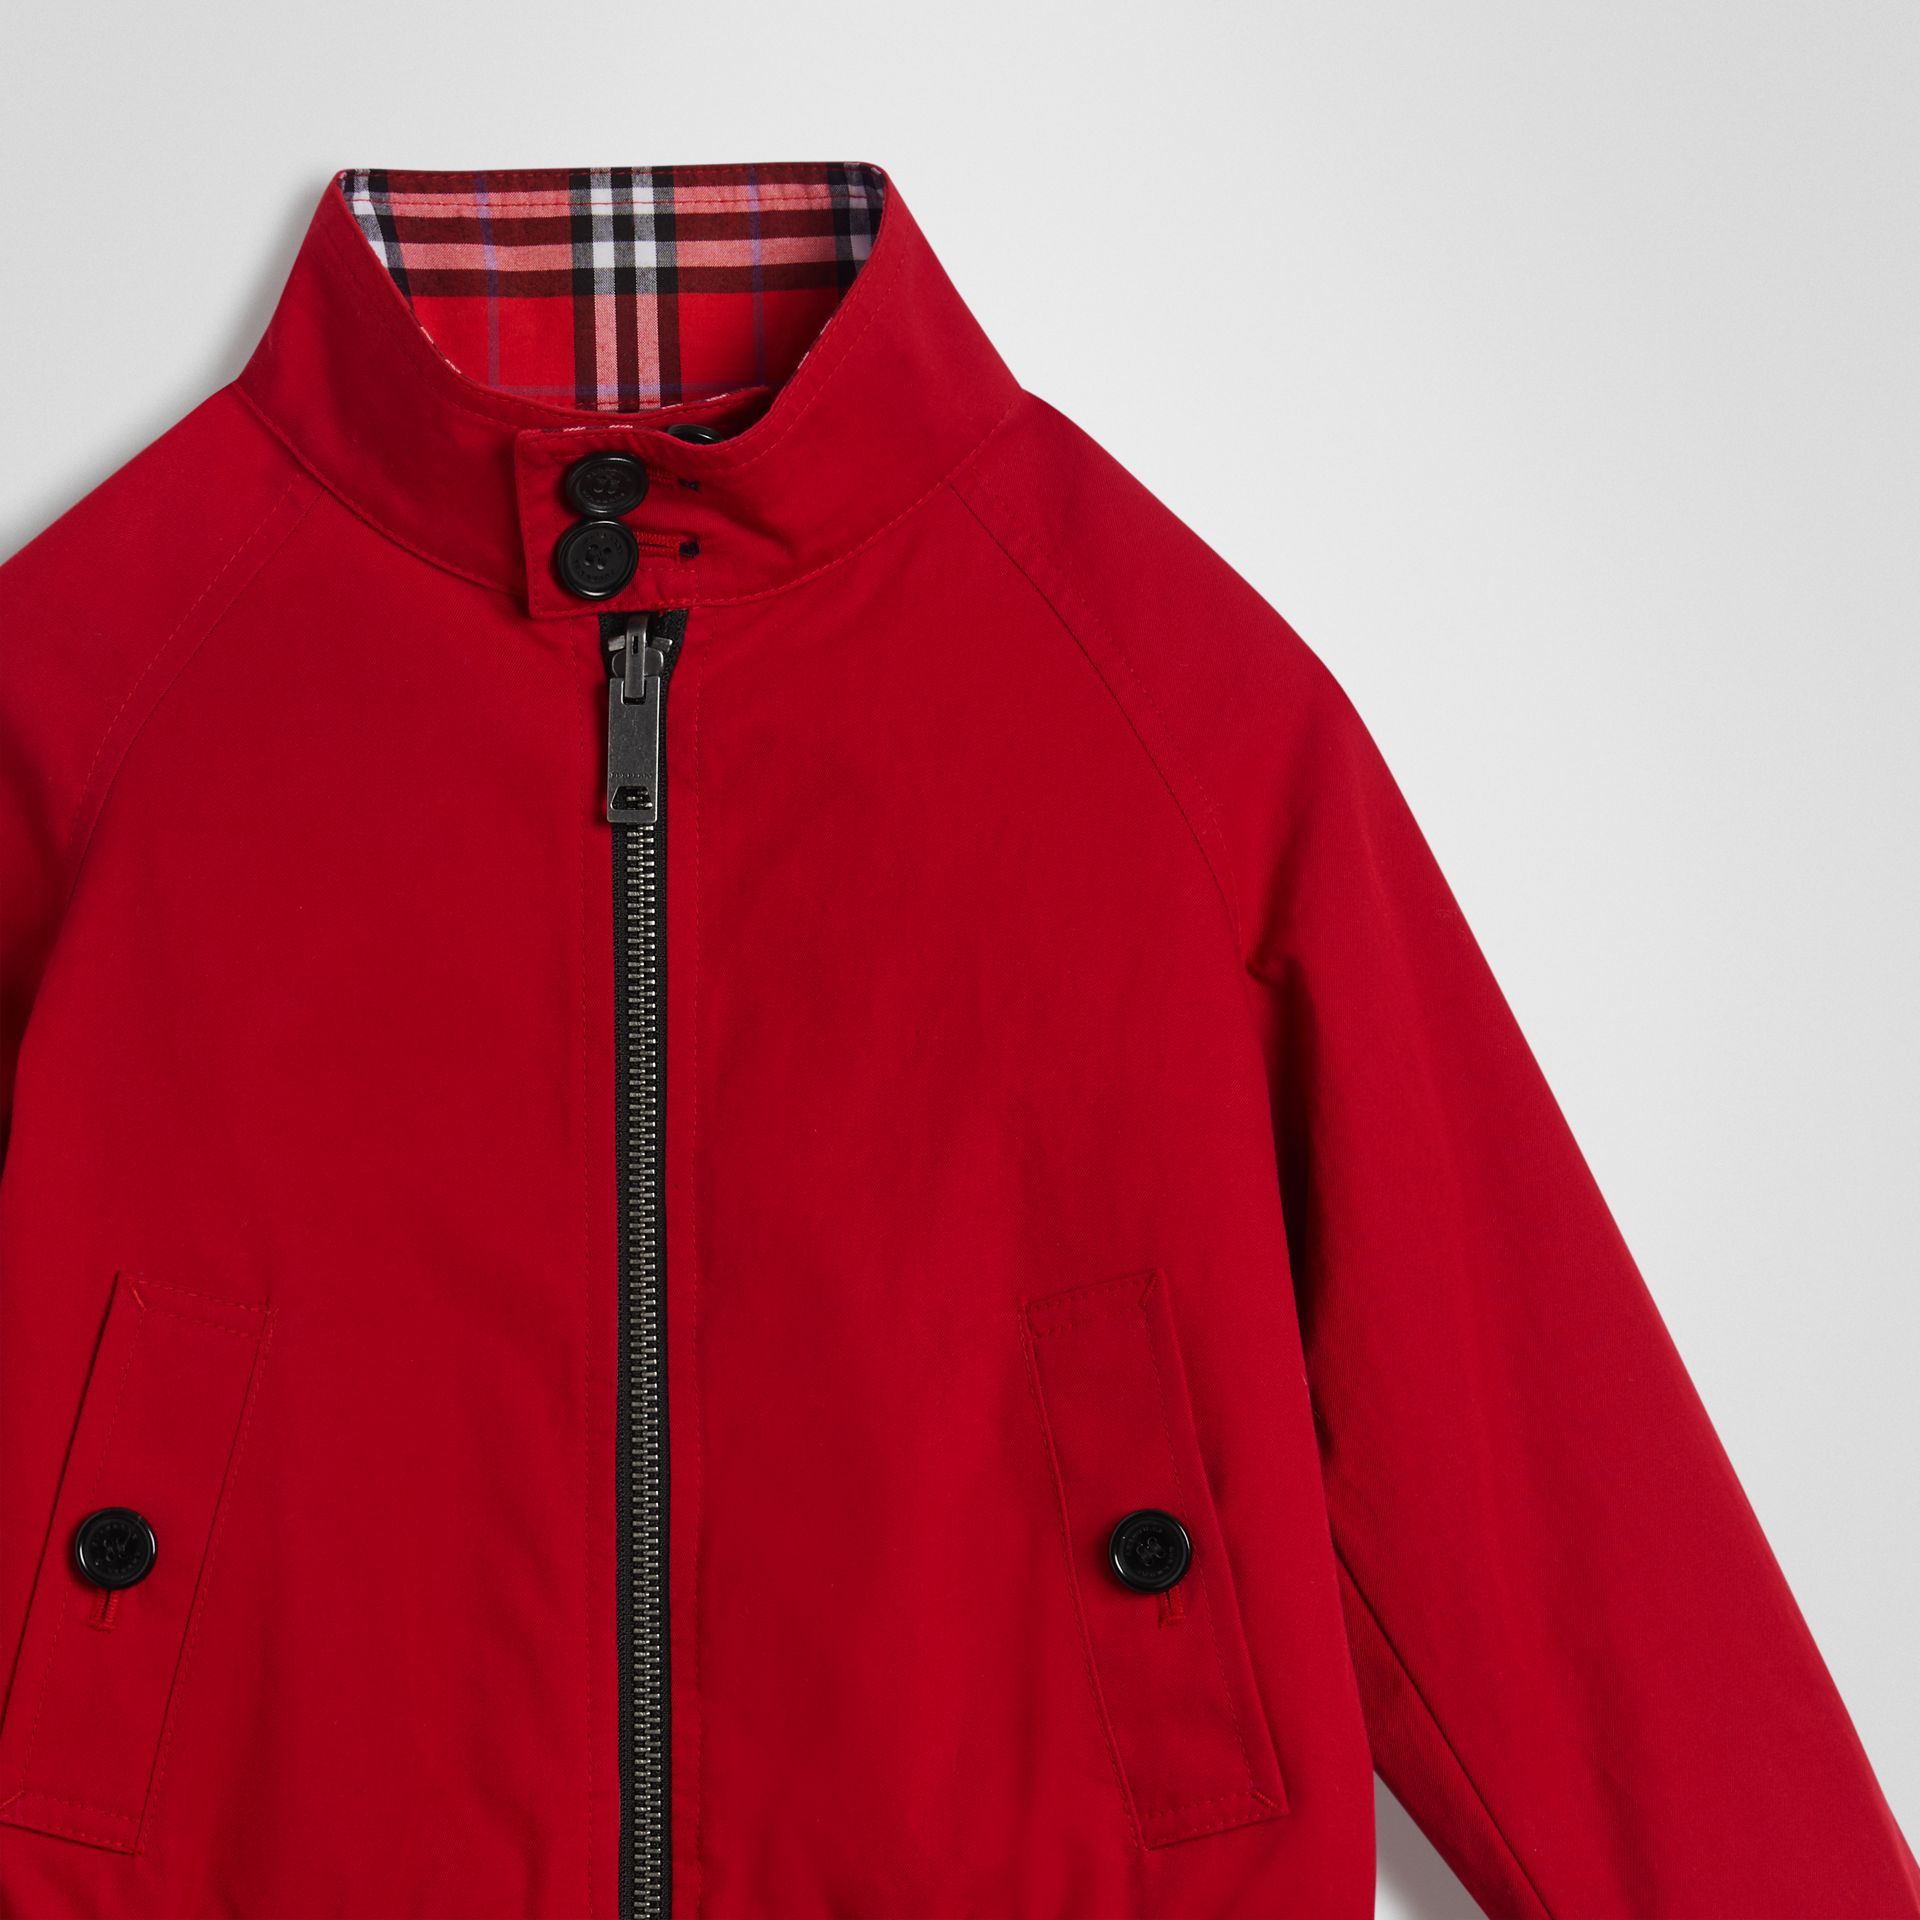 Reversible Check Cotton Harrington Jacket in Bright Red - Children | Burberry - gallery image 3